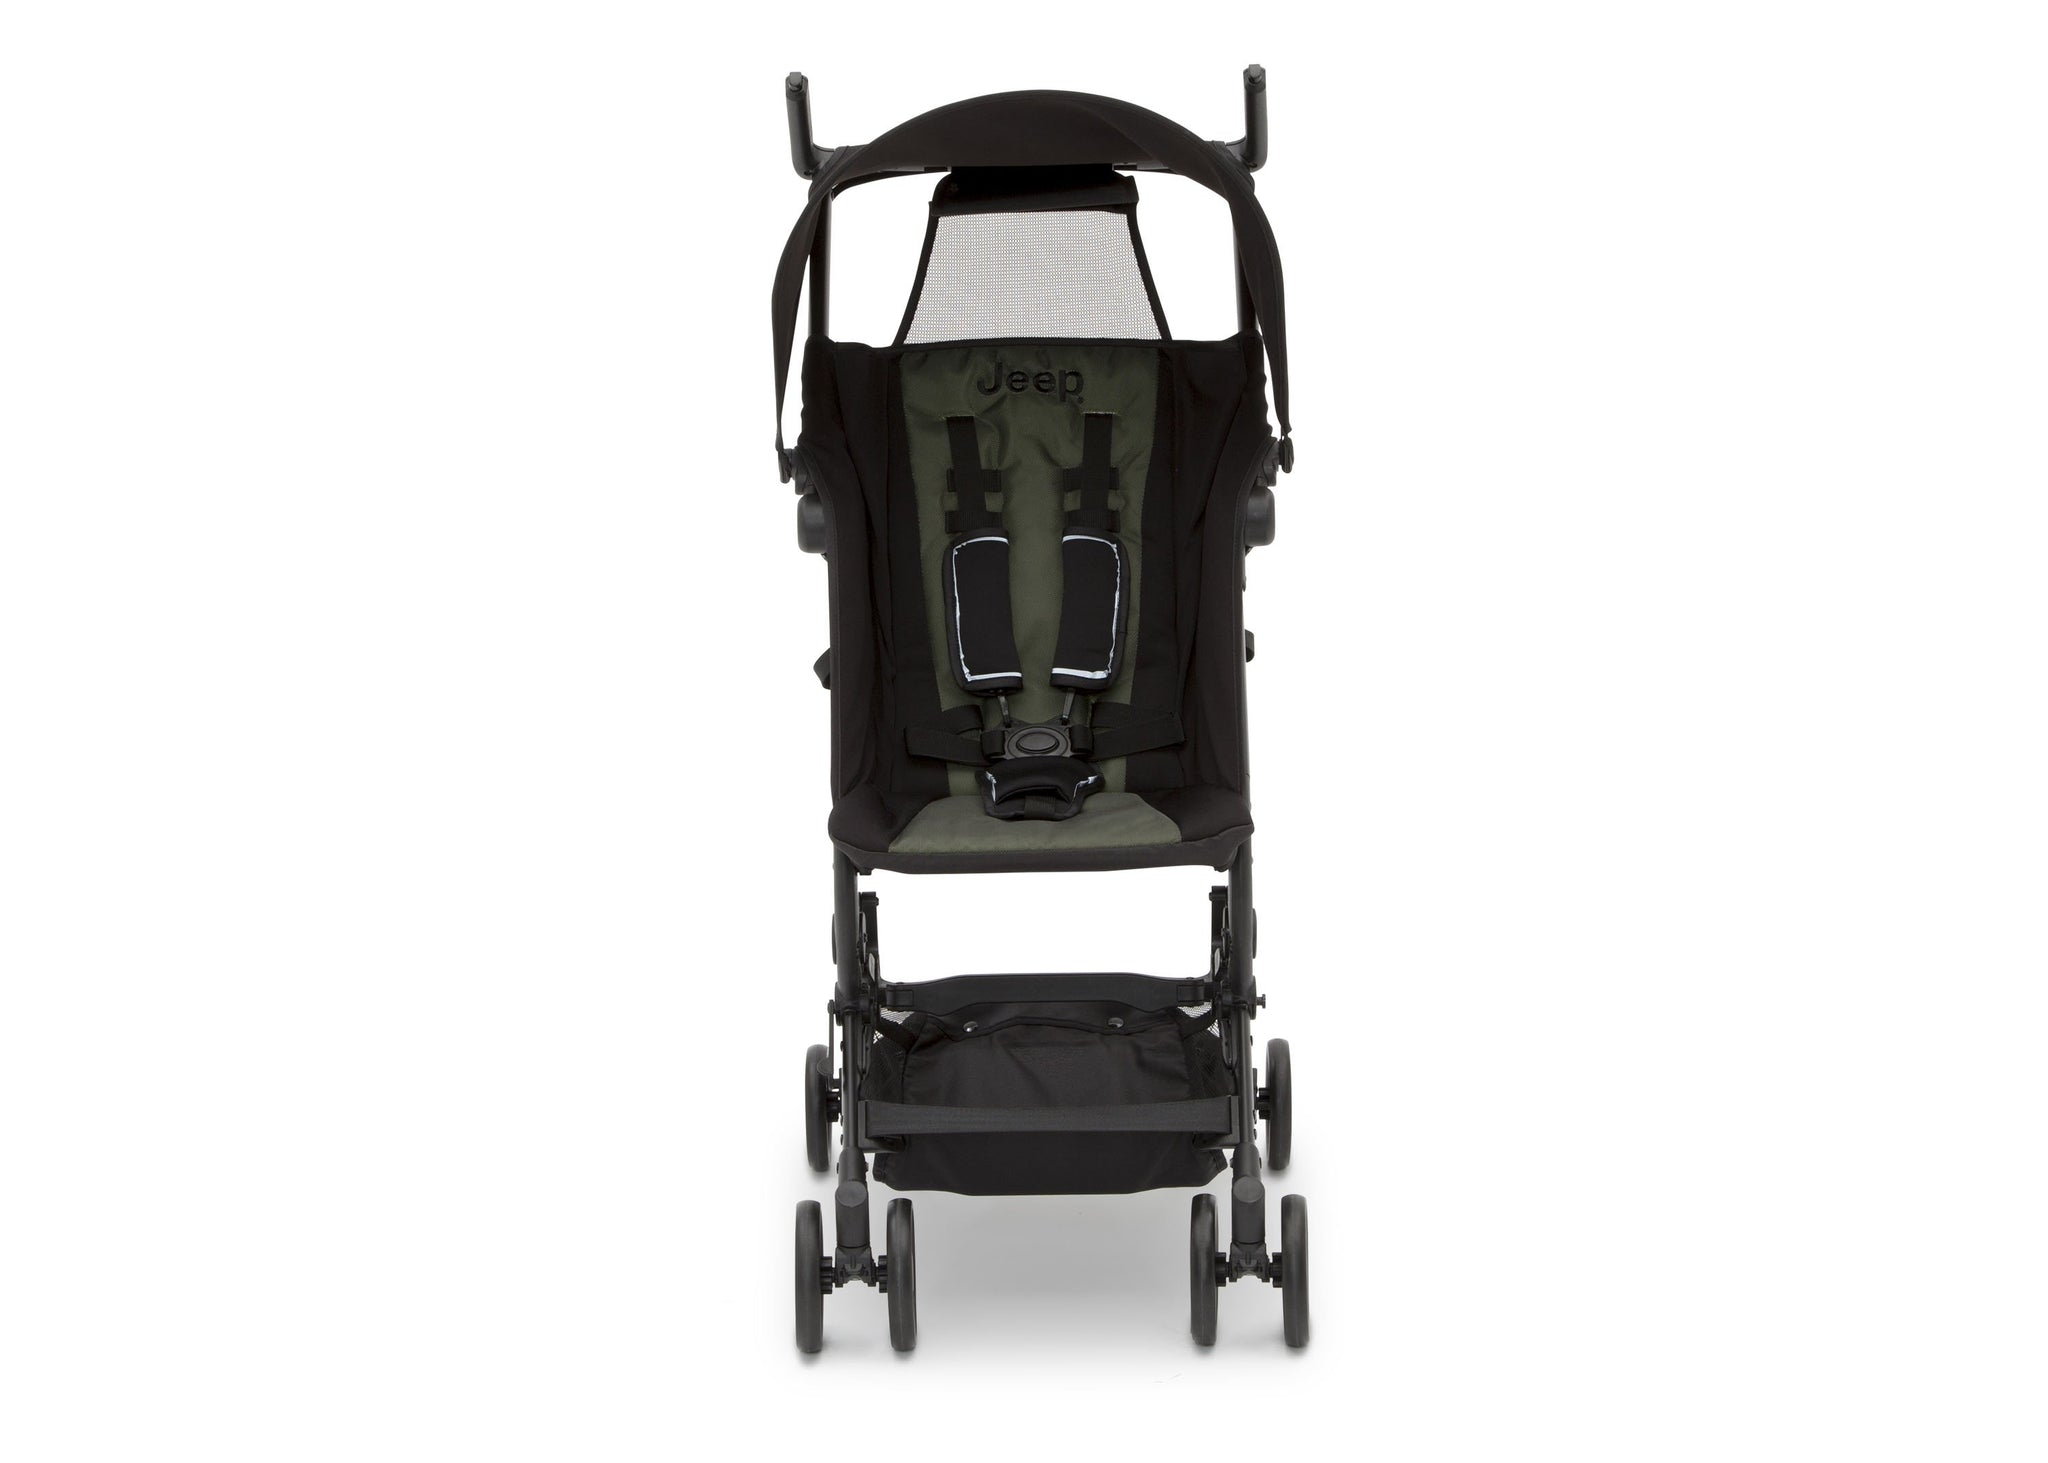 Jeep® Clutch Plus Travel Stroller with Reclining Seat Black with Olive Green (2182),  Reclining Seat Front View